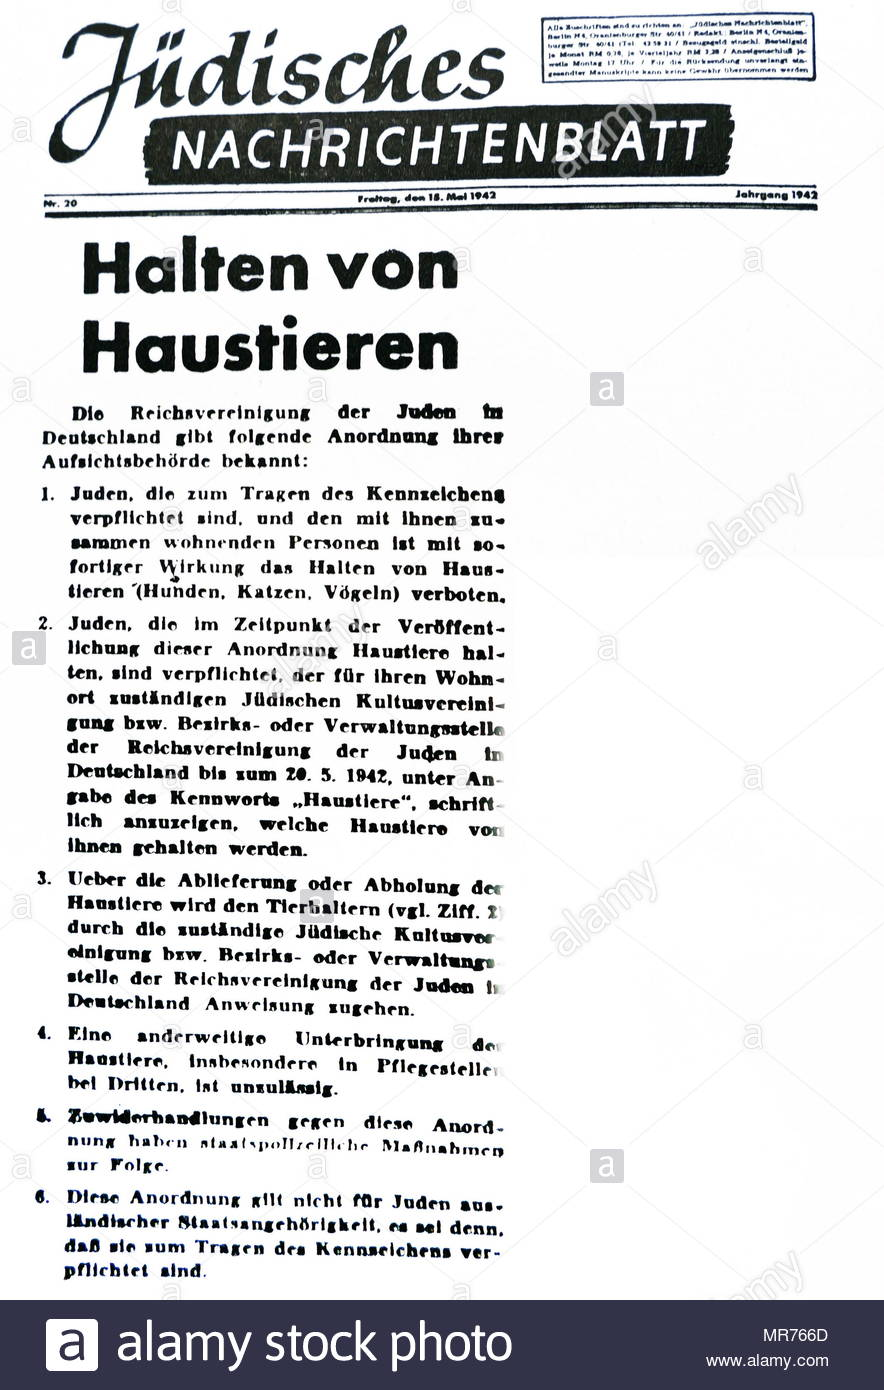 Nazi Era, Decree May 1942. Effective immediately, Jews are forbidden to keep-pets (dogs, cats, birds). By May 20, 1942, Jews must file a list of the pets they are keeping. They will be notified regarding the sur-render of these pets, but they may not turn them over to a third person. - Stock Image